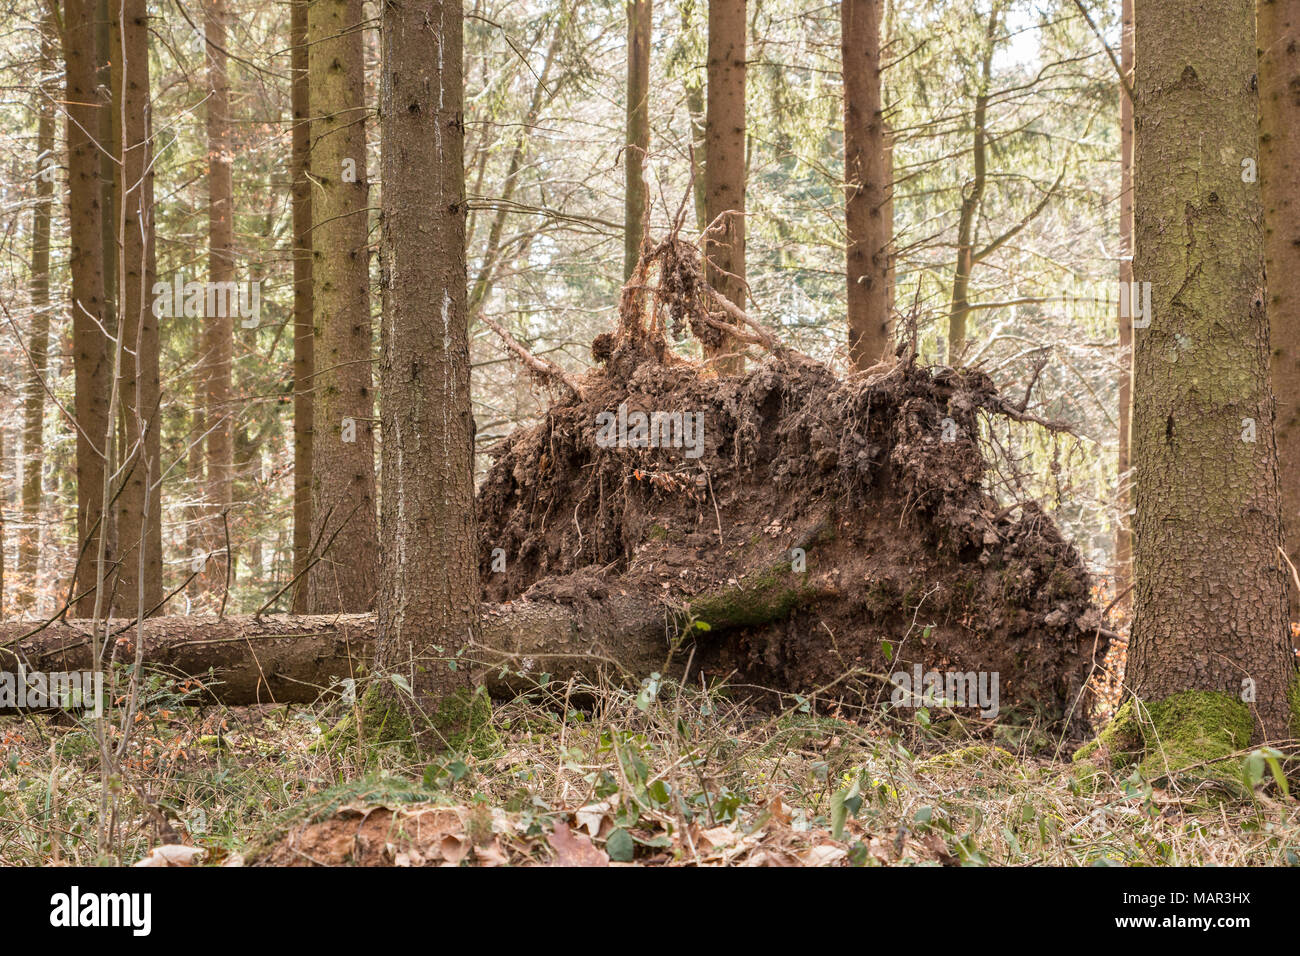 Big fallen trees in the middle of the forest - Stock Image